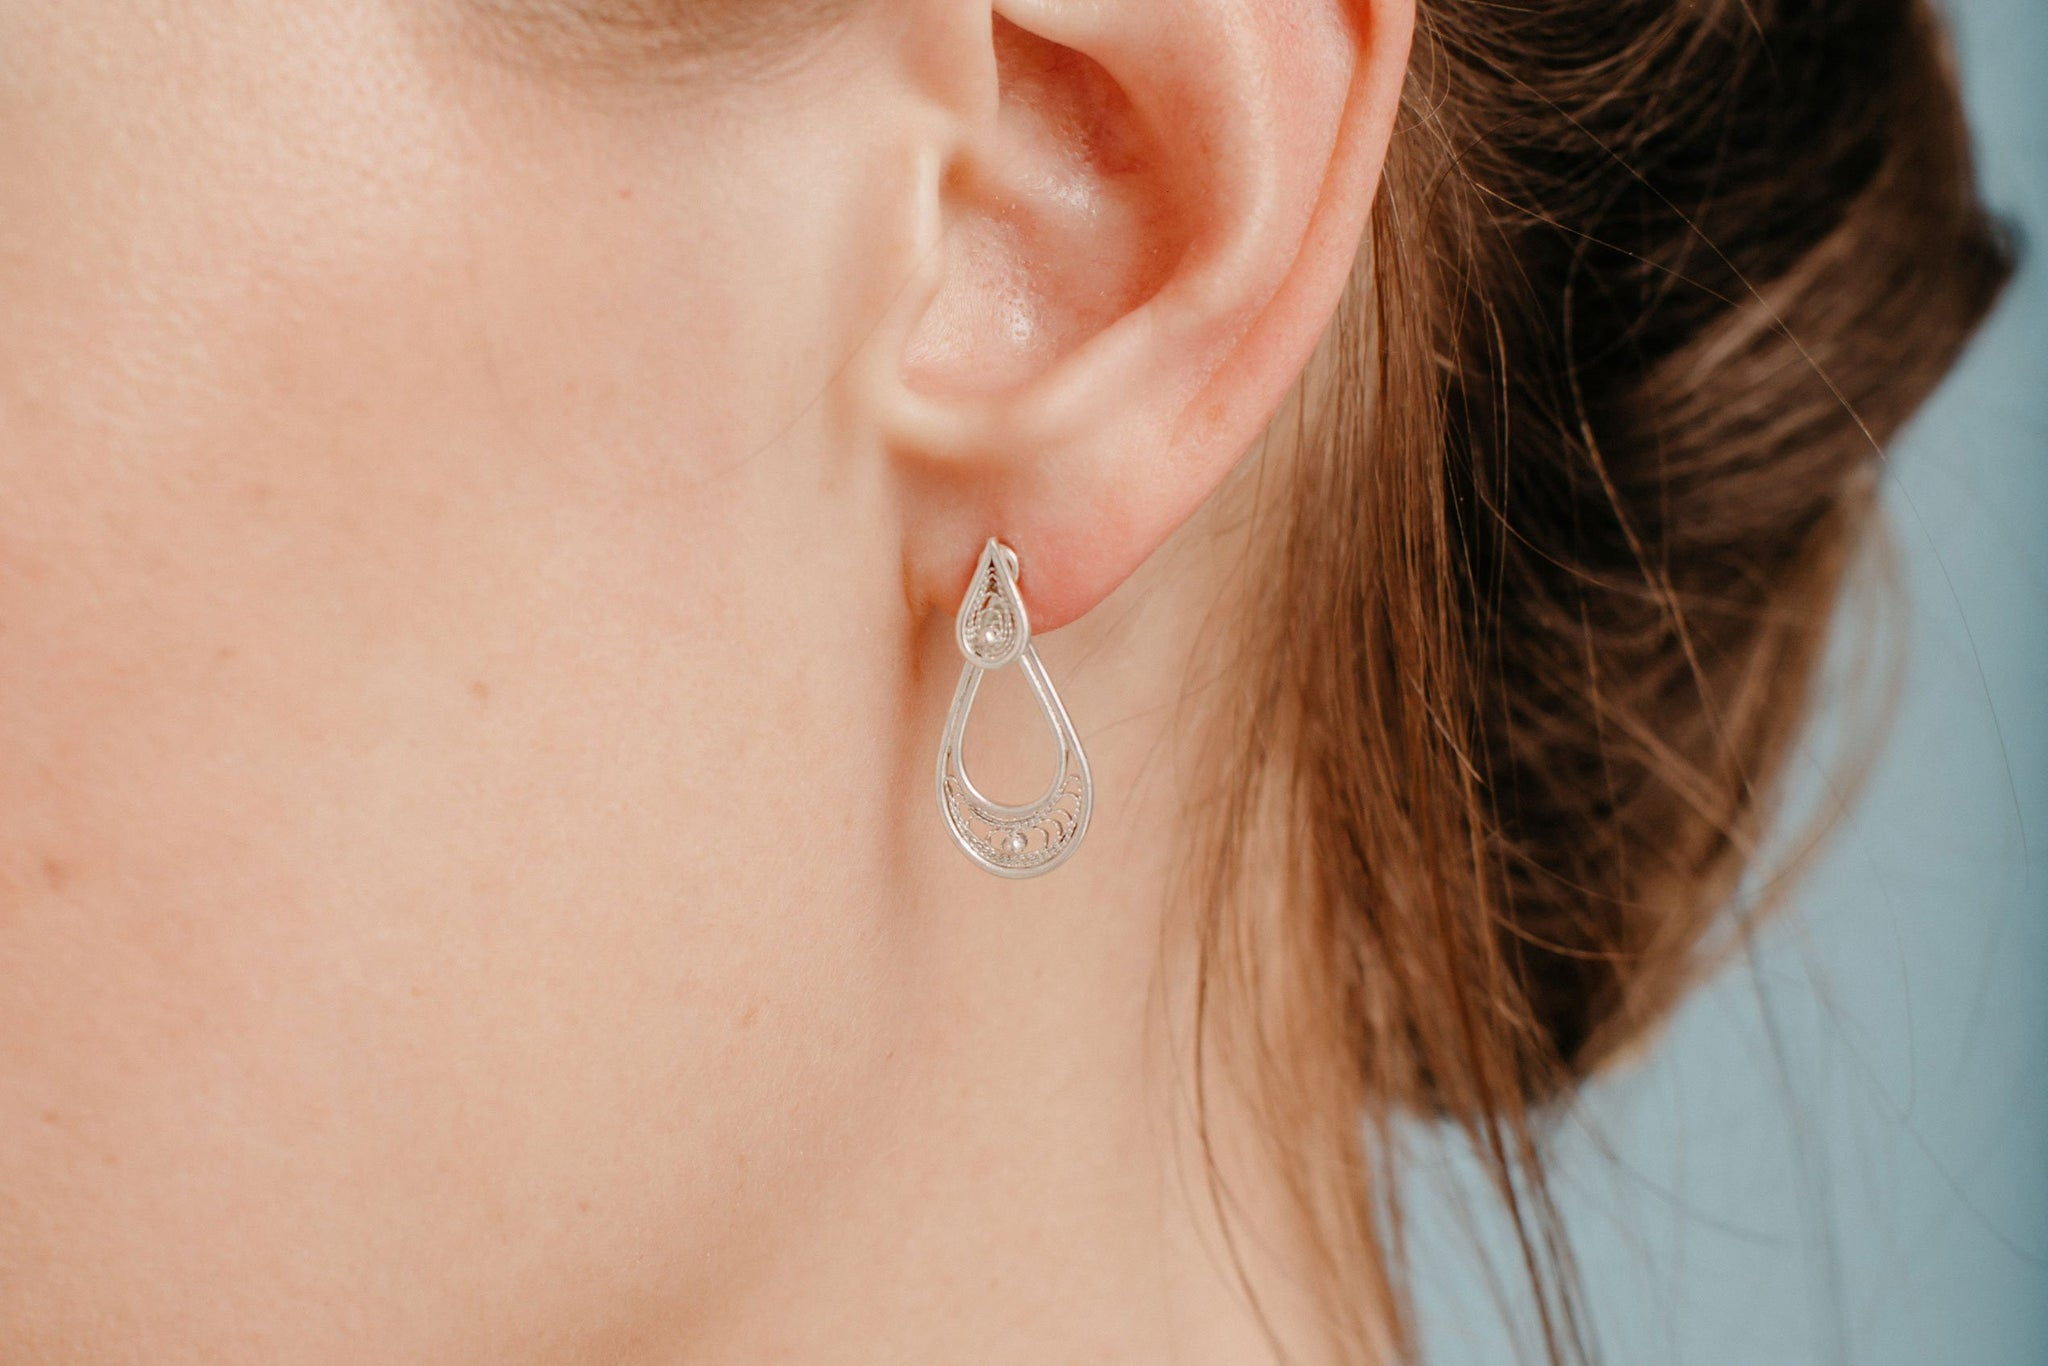 Silver Filigree Jacket Earrings - Teardrop